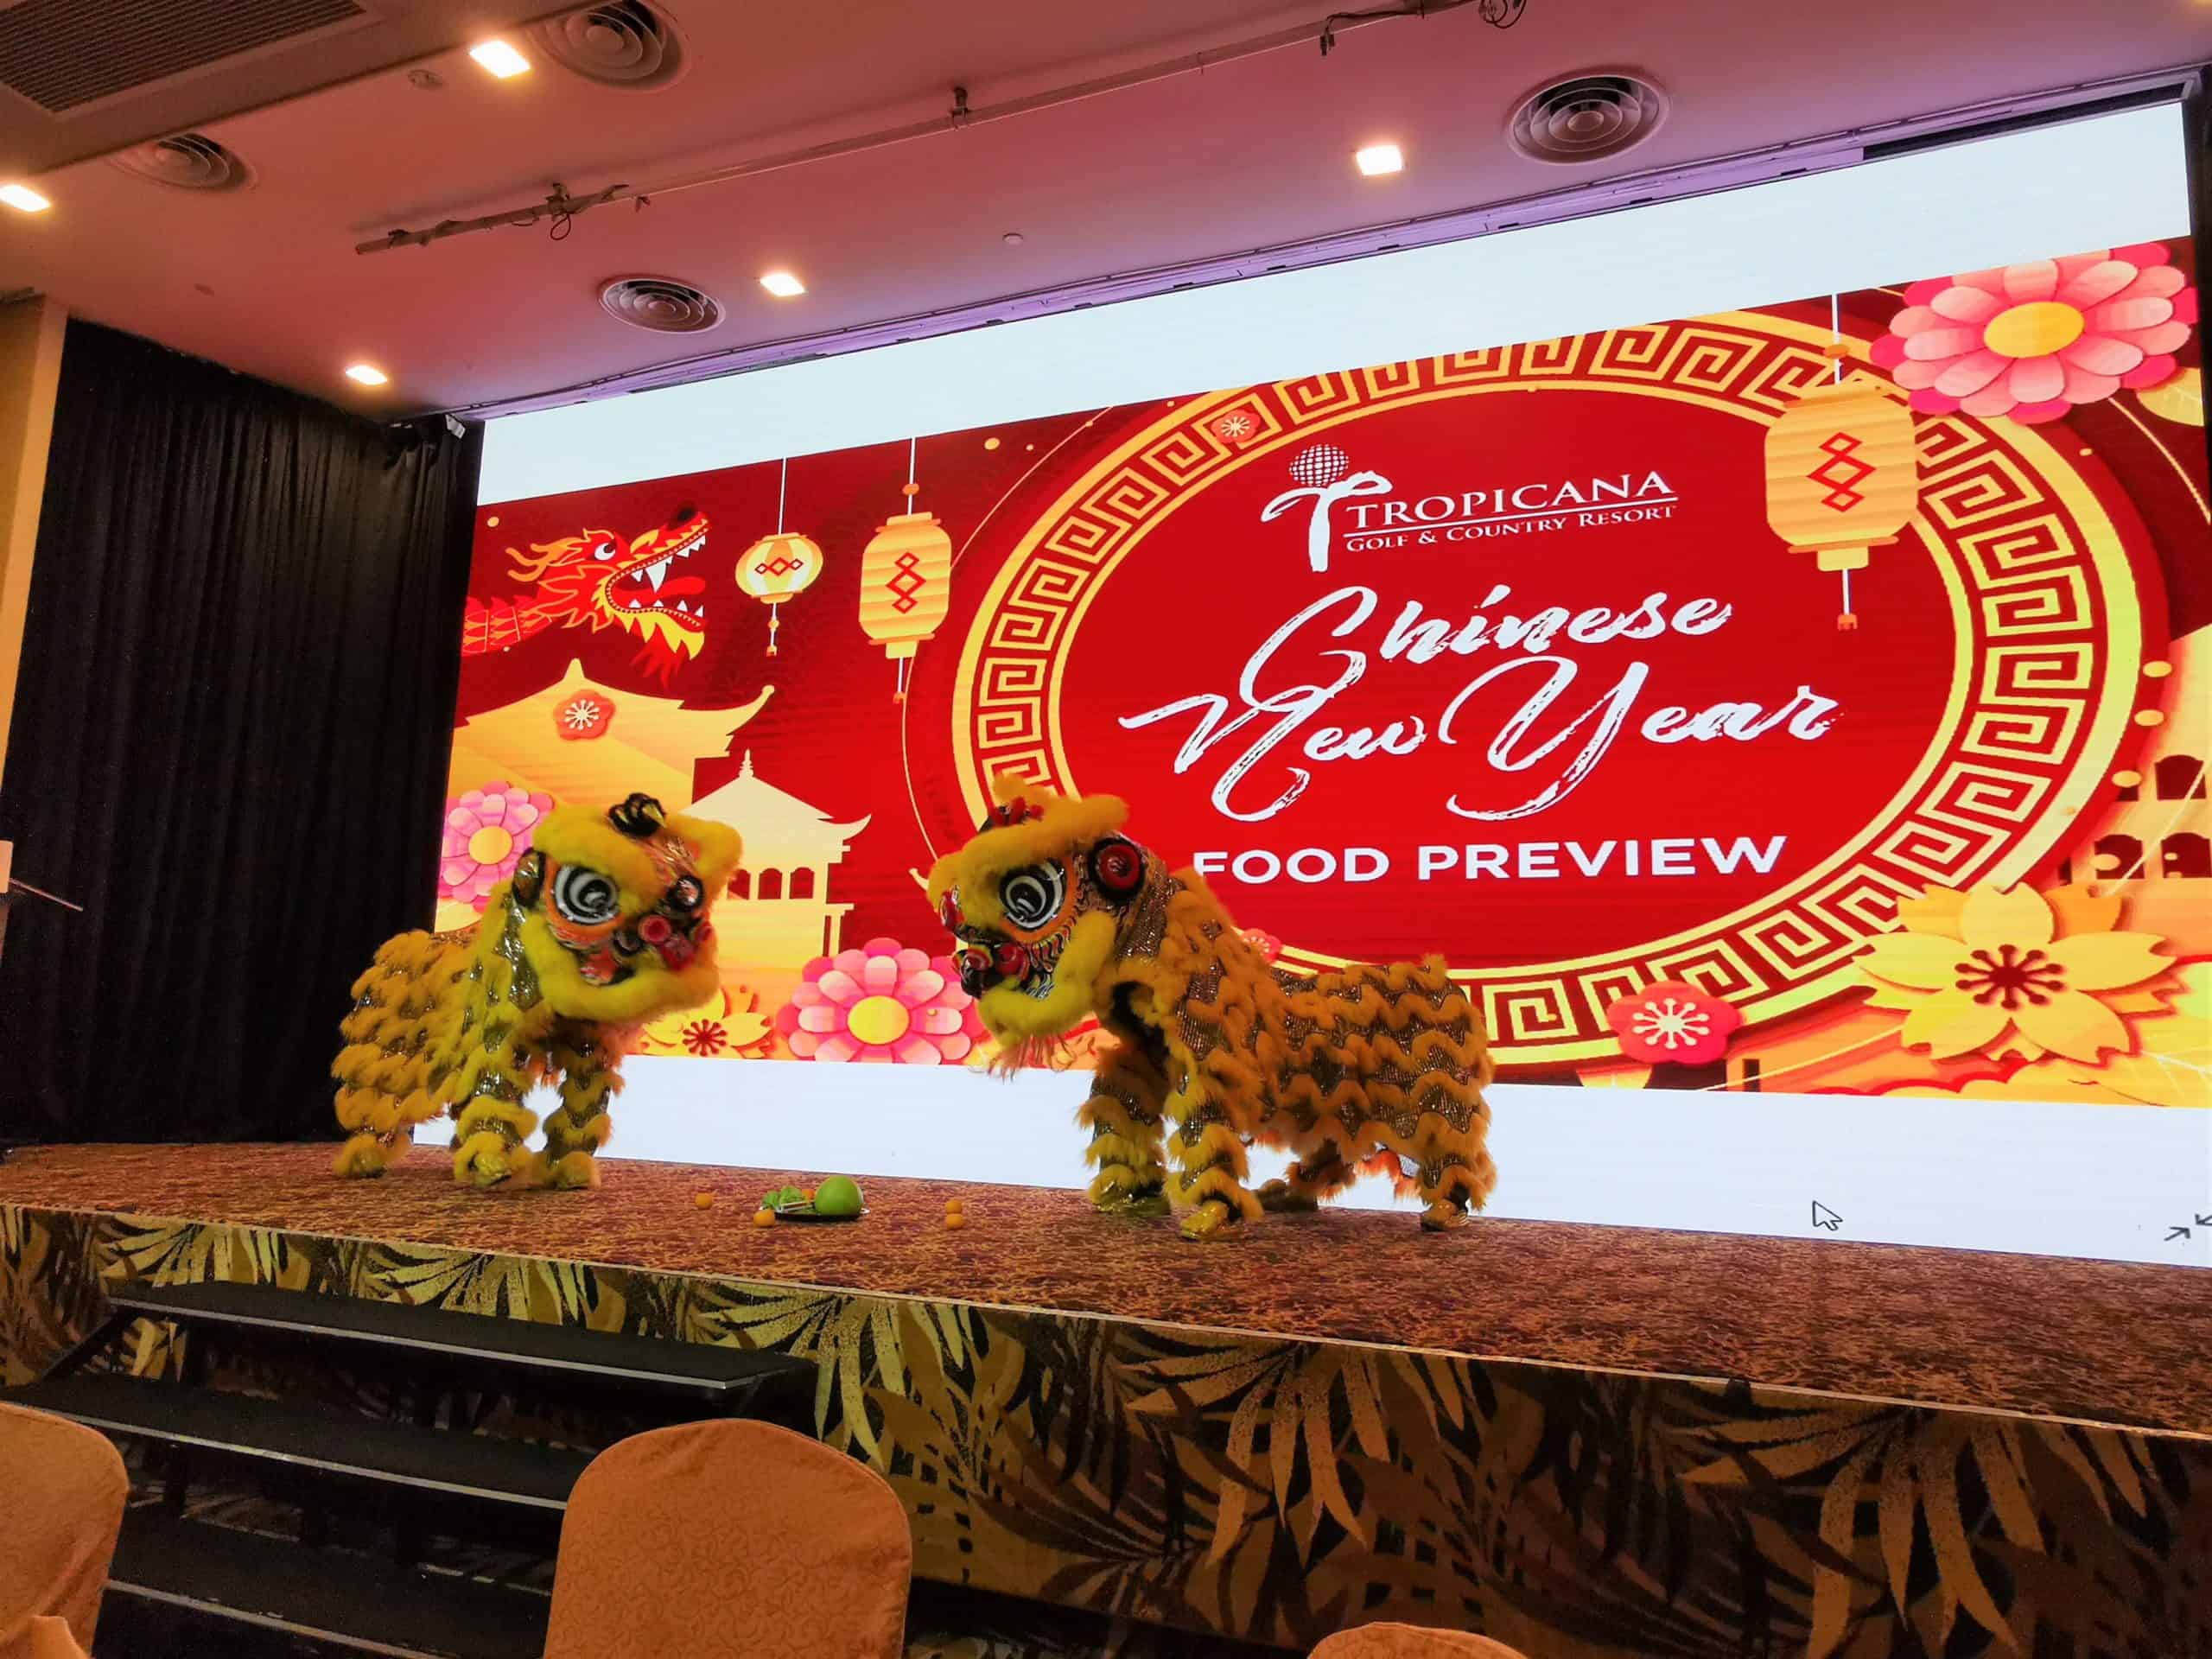 Tropicana Golf & Country Resort (TGCR) Ushers in Year of Rat with CNY Food Preview